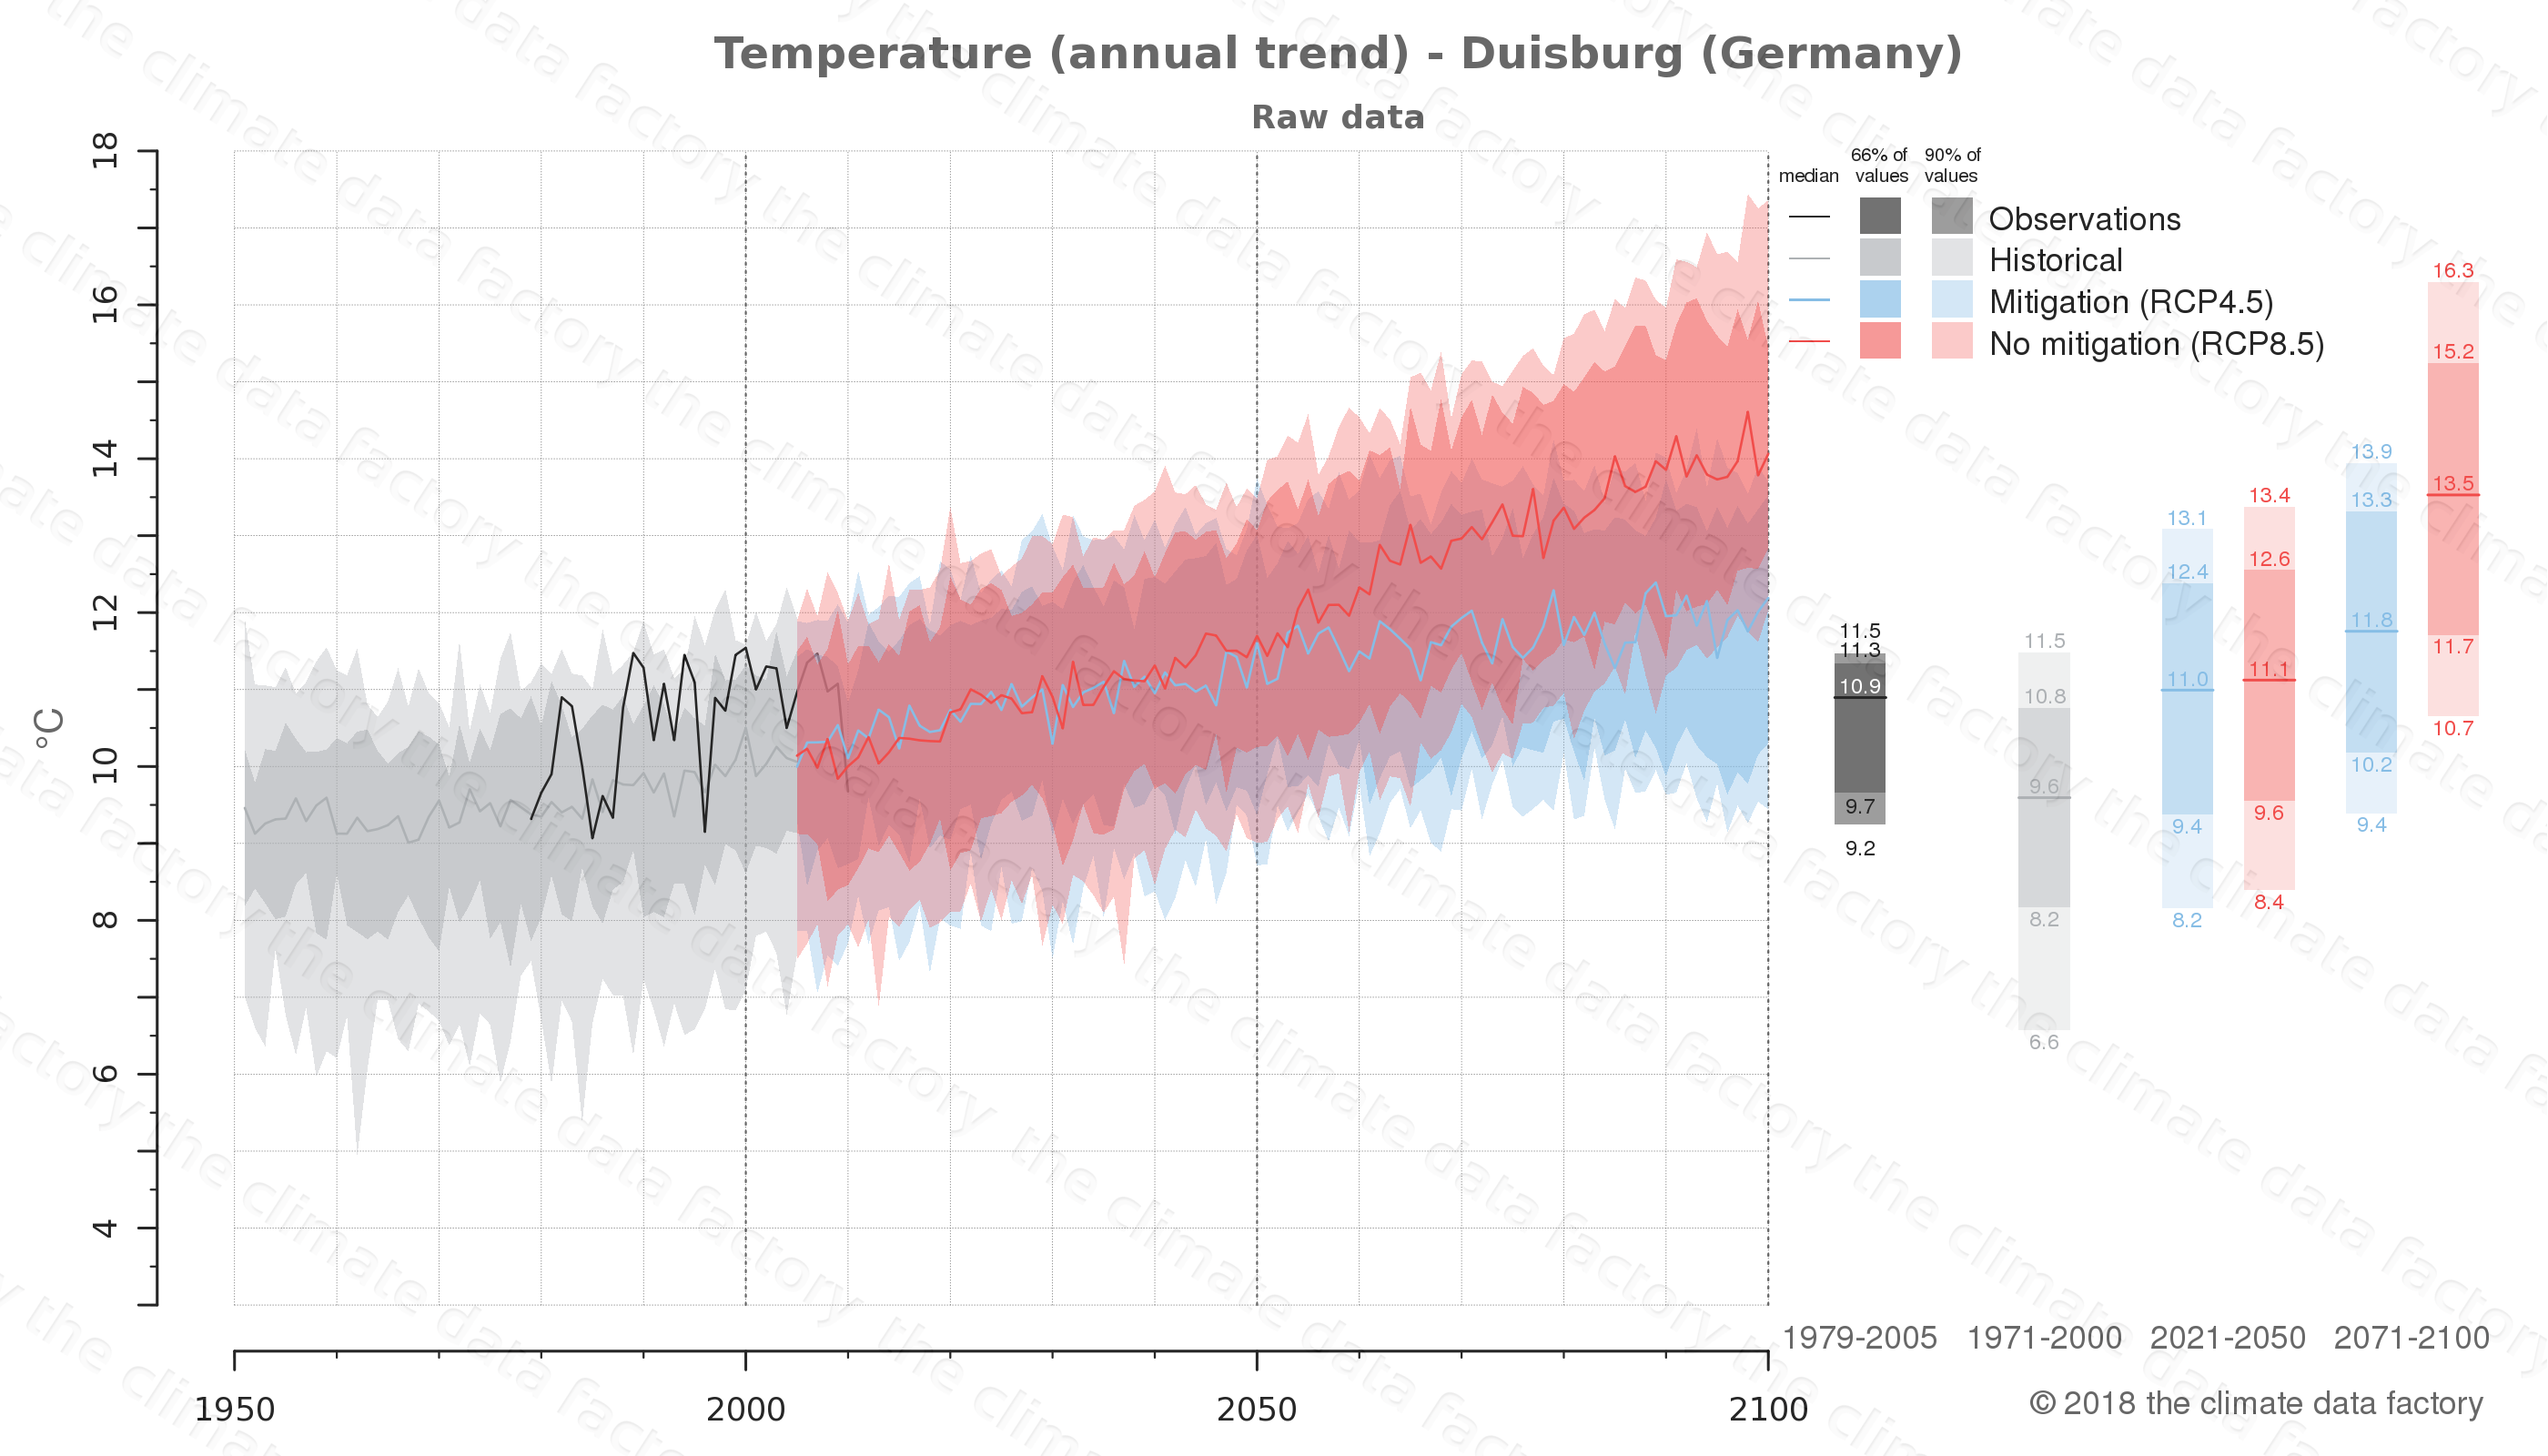 climate change data policy adaptation climate graph city data temperature duisburg germany